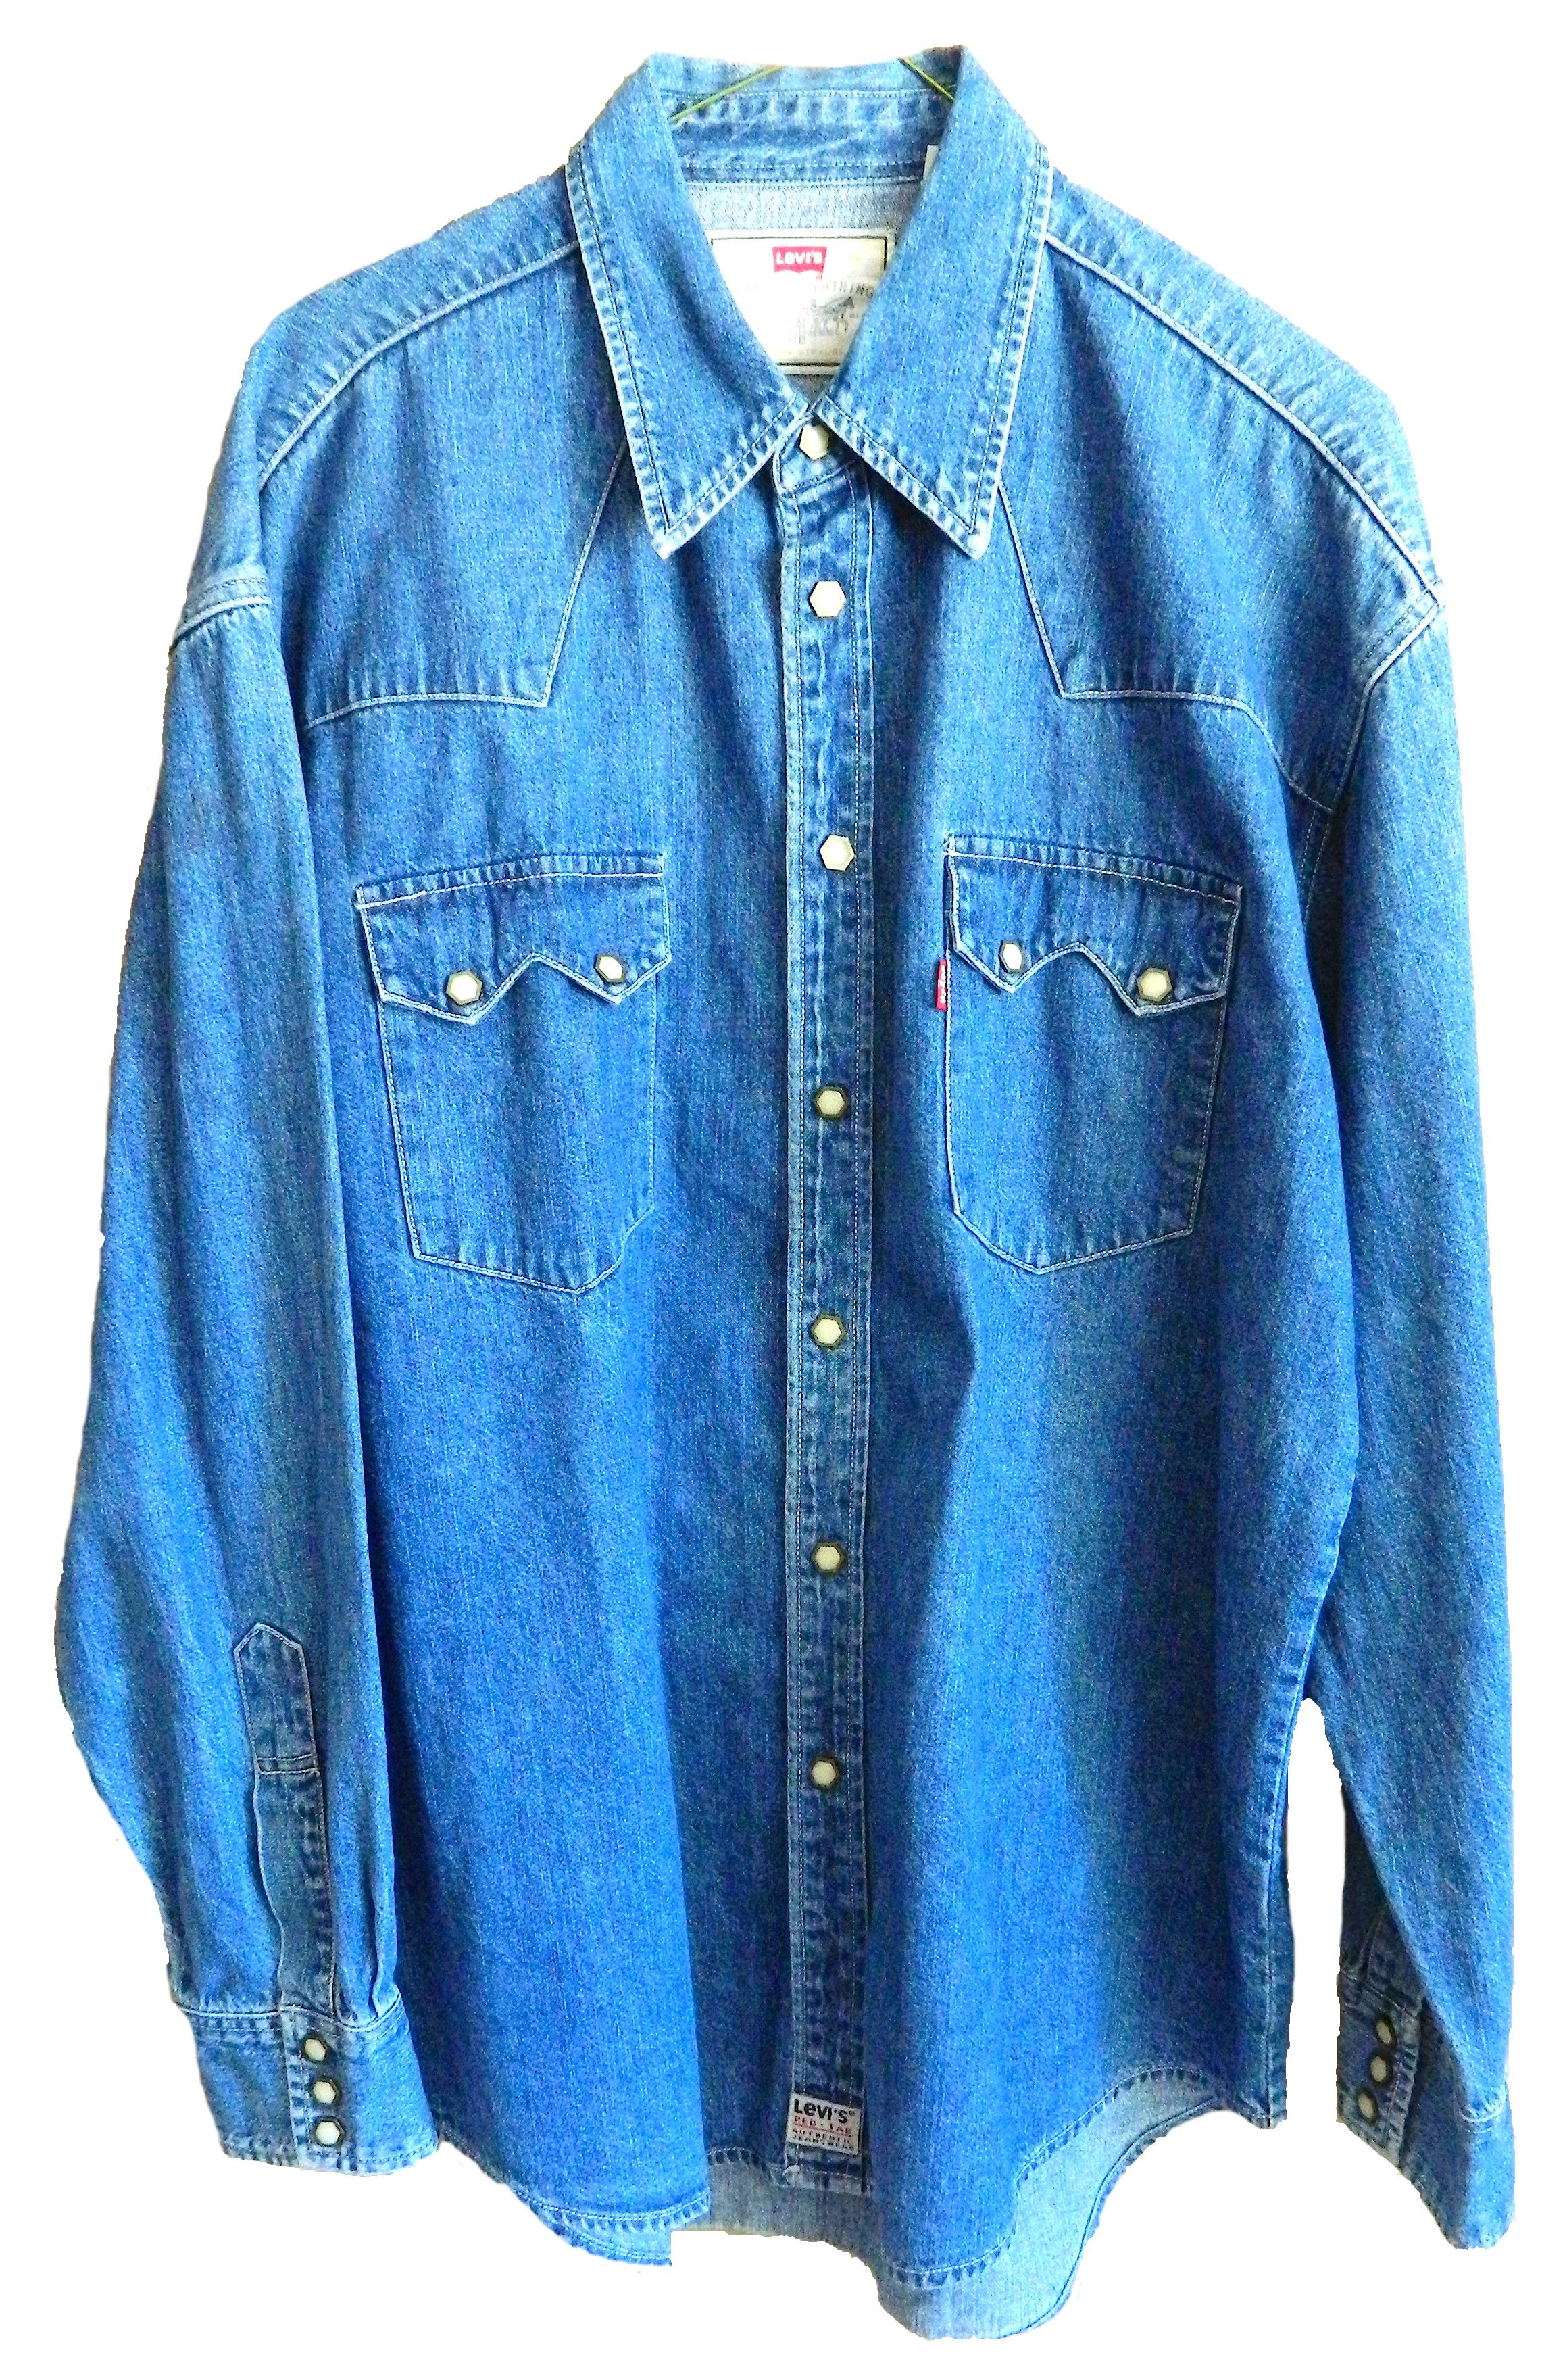 8e4f891bb2 vintage mens womens oversized Levi's button up long sleeve collared shirt.  Hexagonal pearlized snap buttons down length and both pockets.